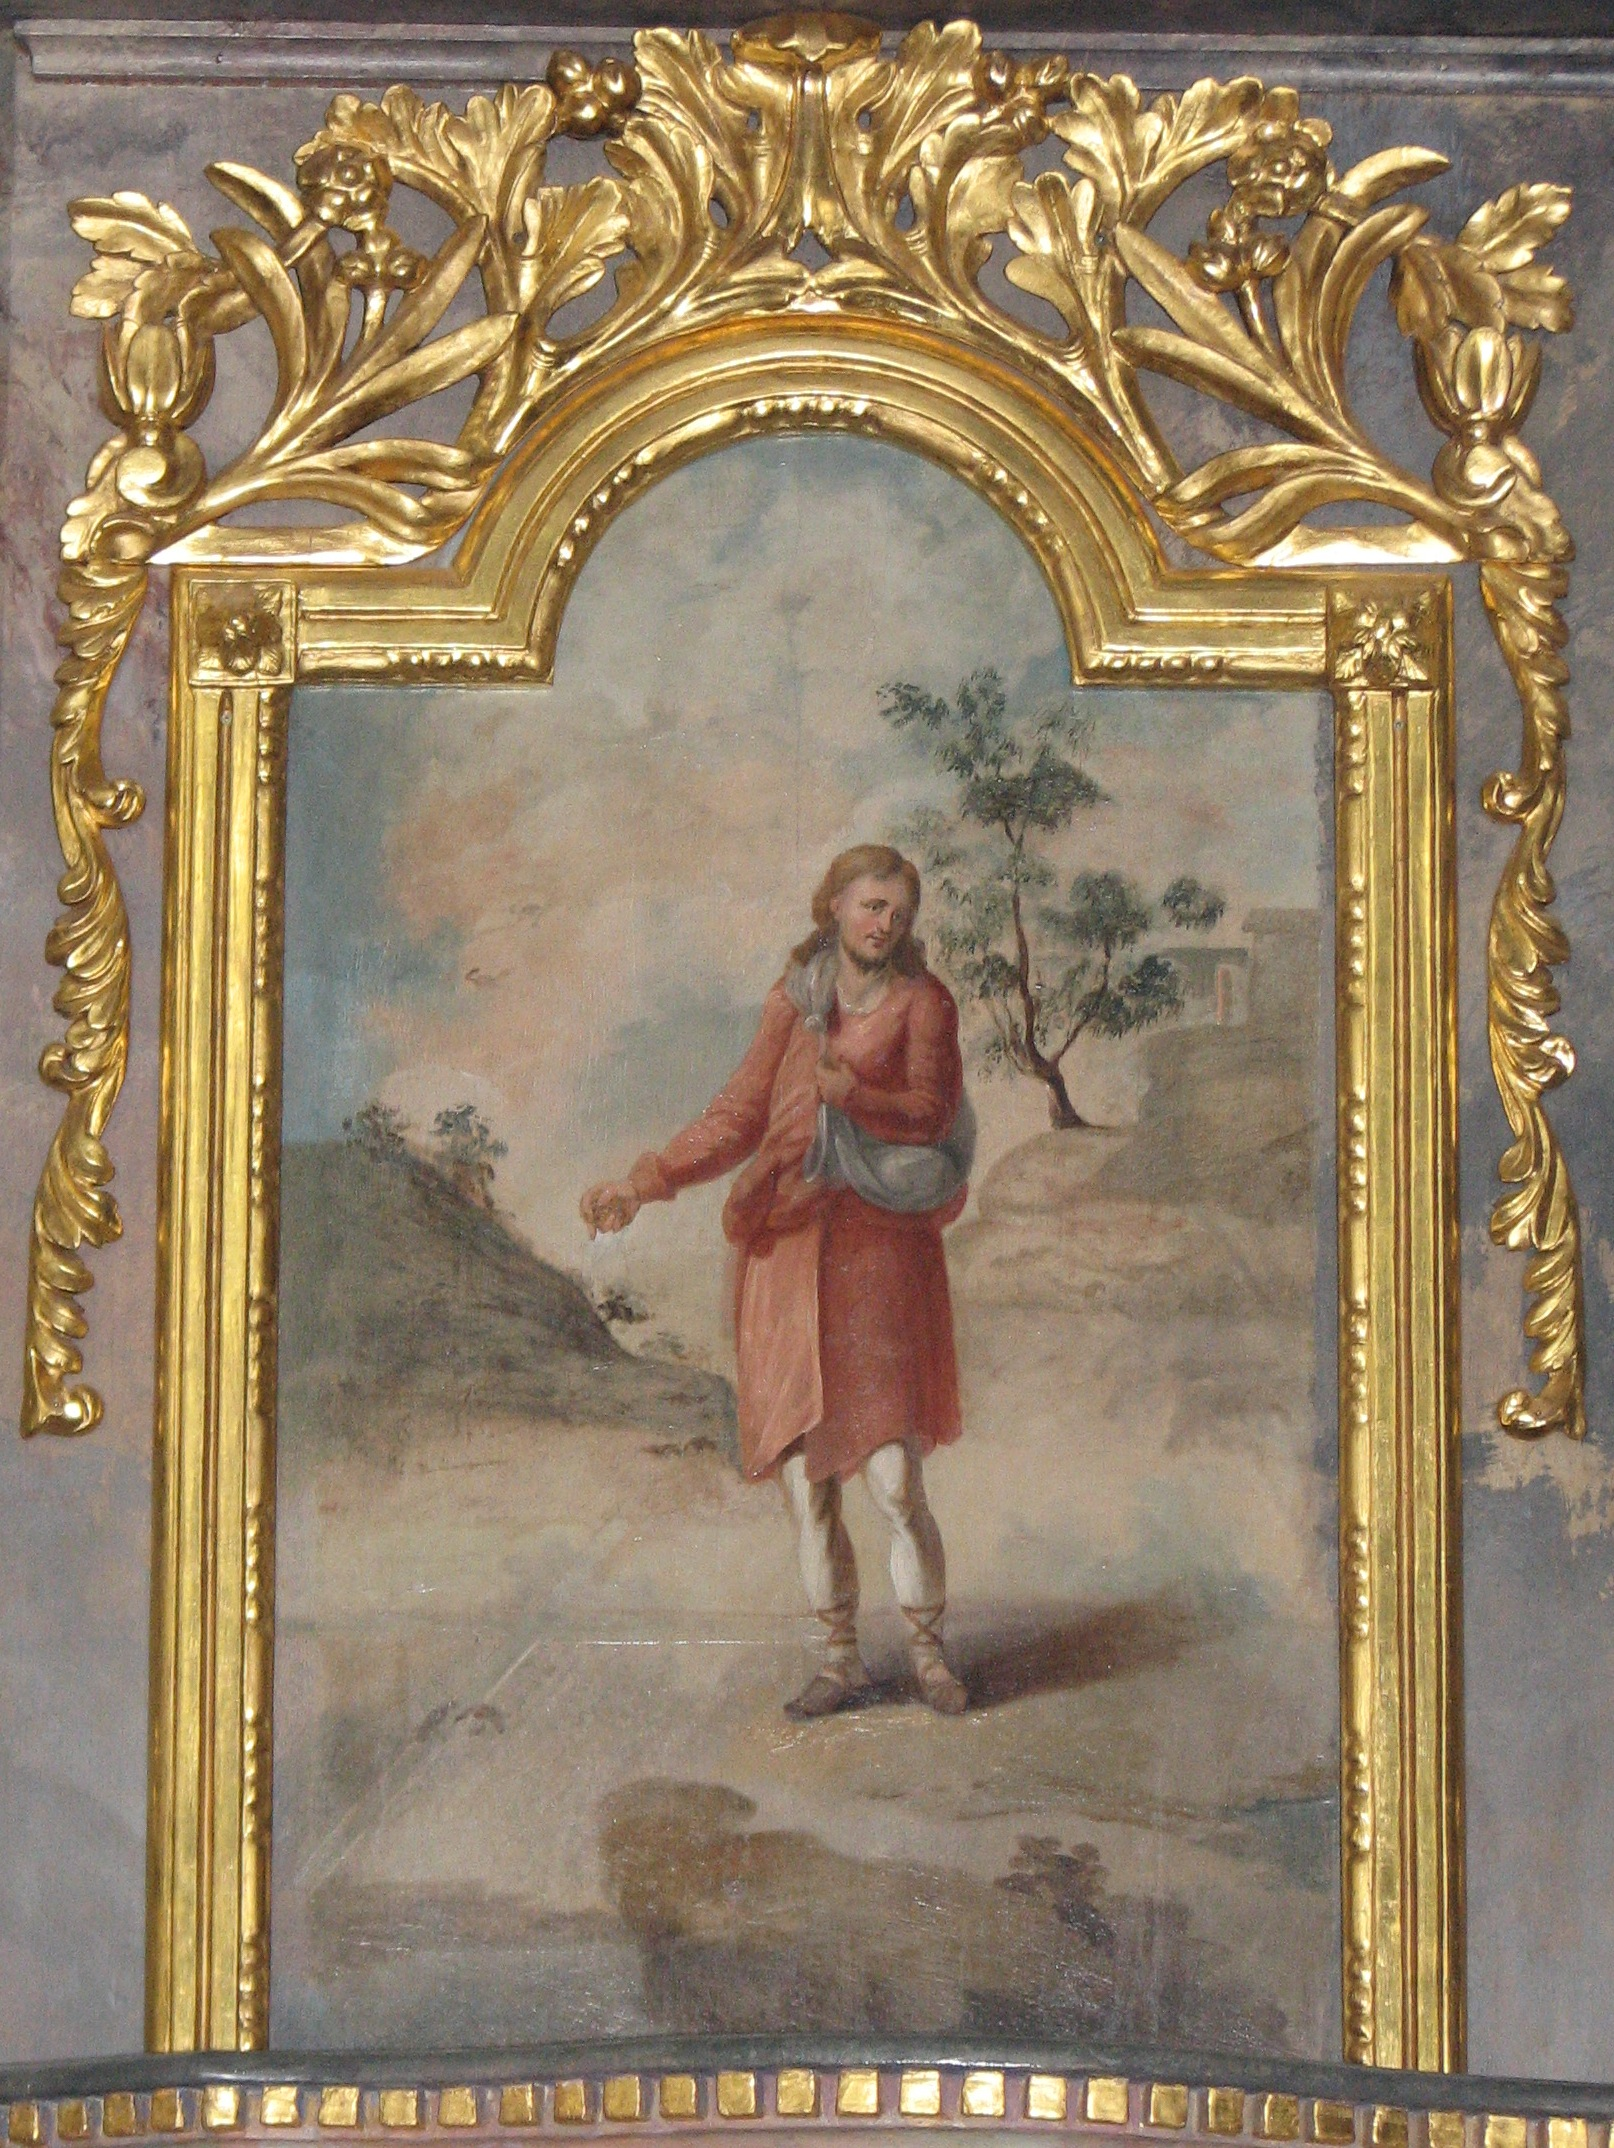 Parable of the Sower - Wikipedia